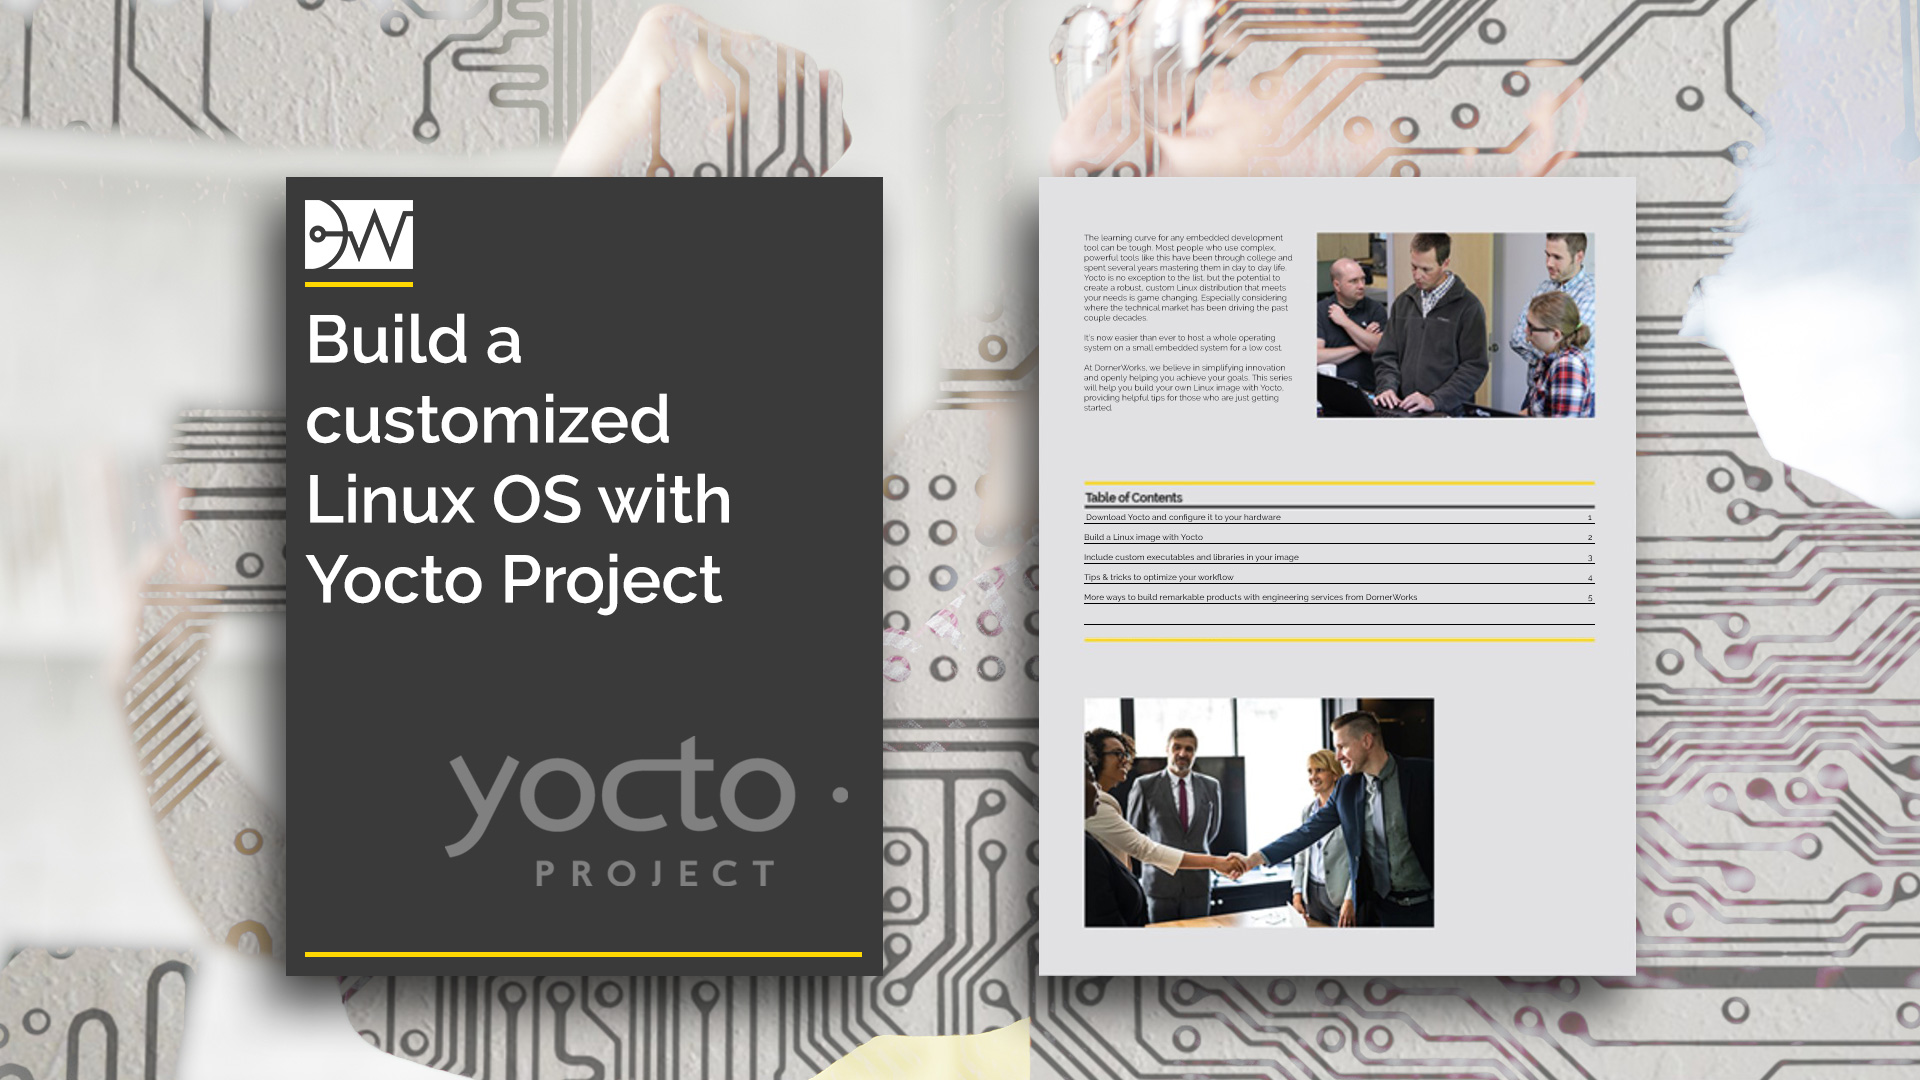 Build a customized Linux OS with Yocto Project